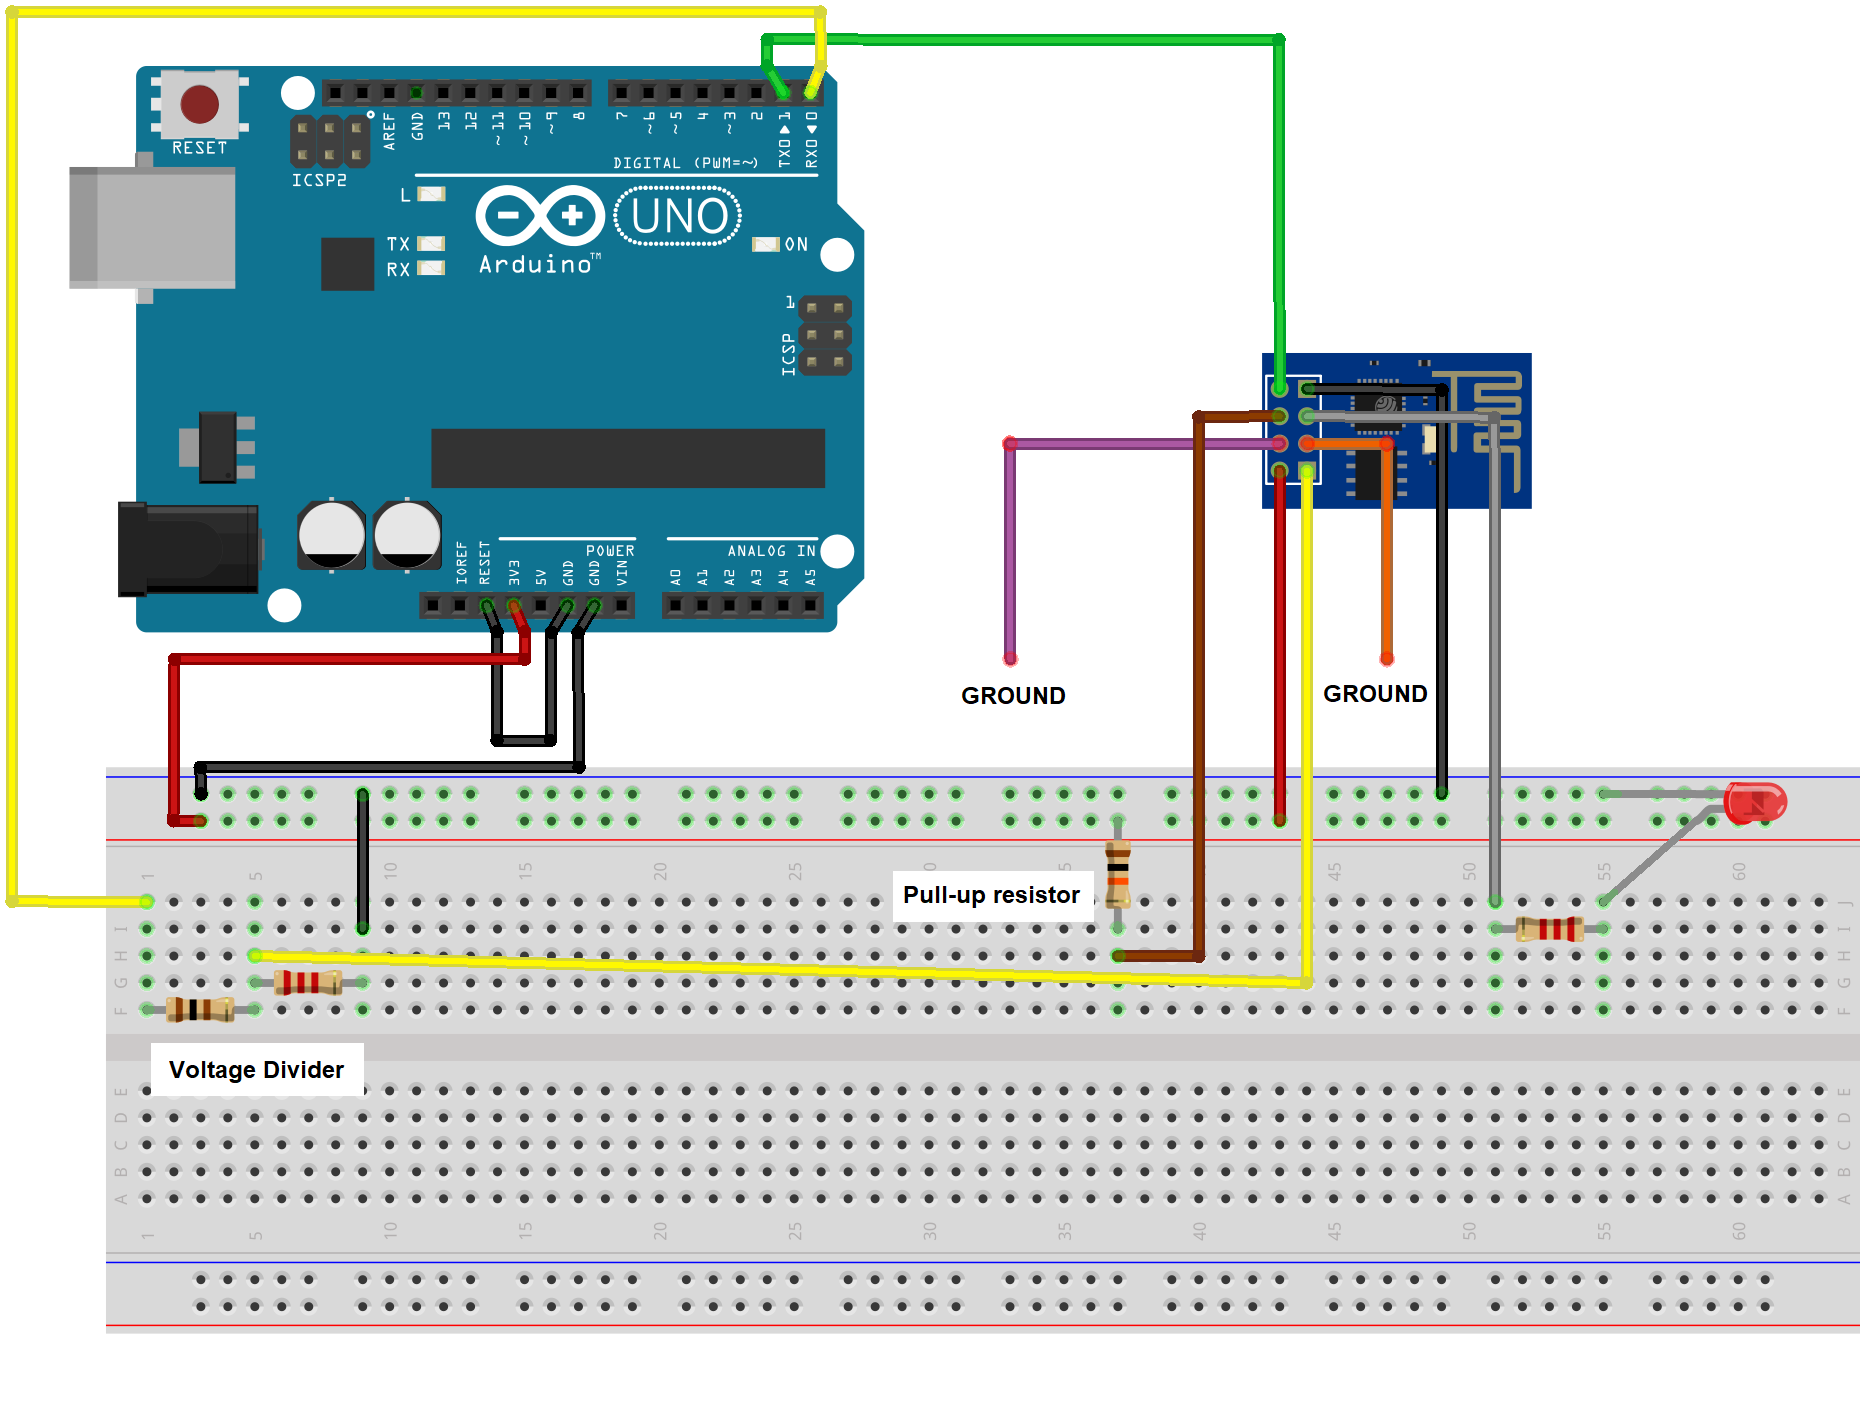 How to Control the Arduino's GPIO Pins From a Web Page